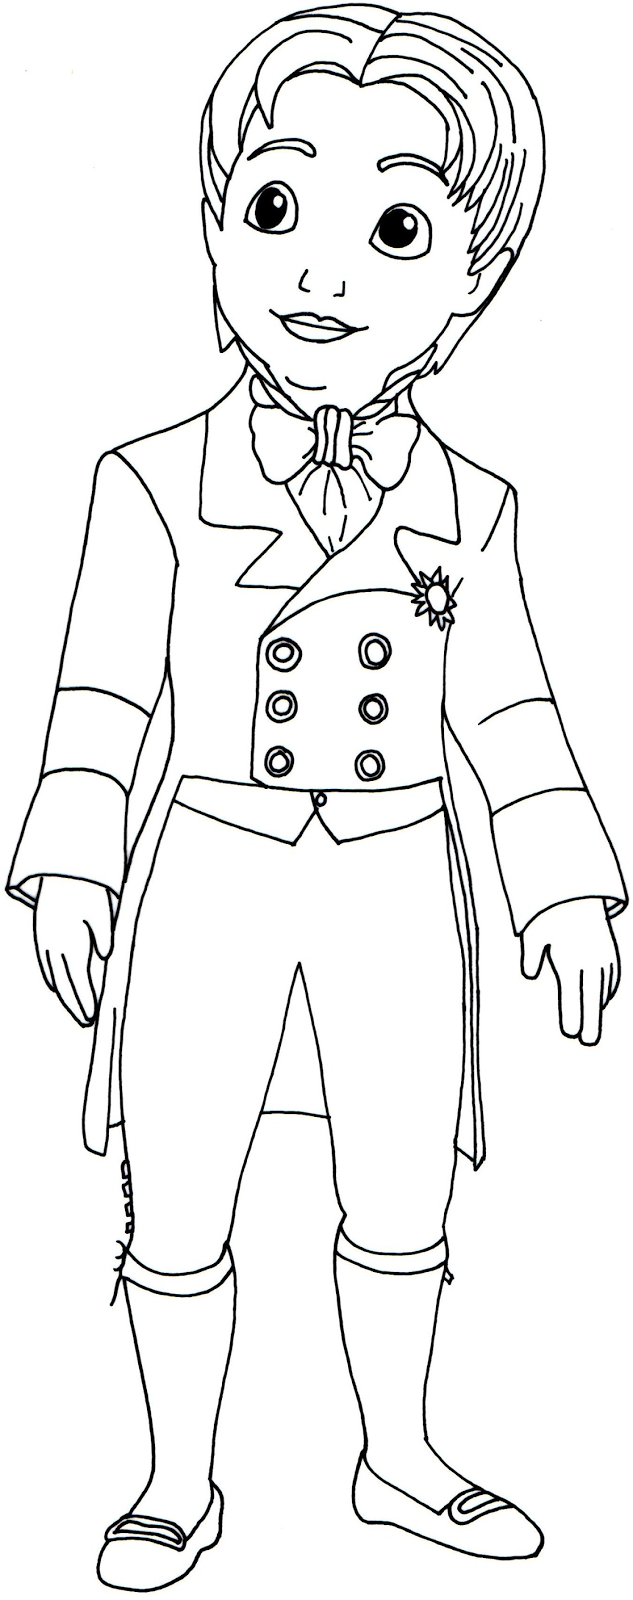 sofia the first coloring pages prince james sofia the first